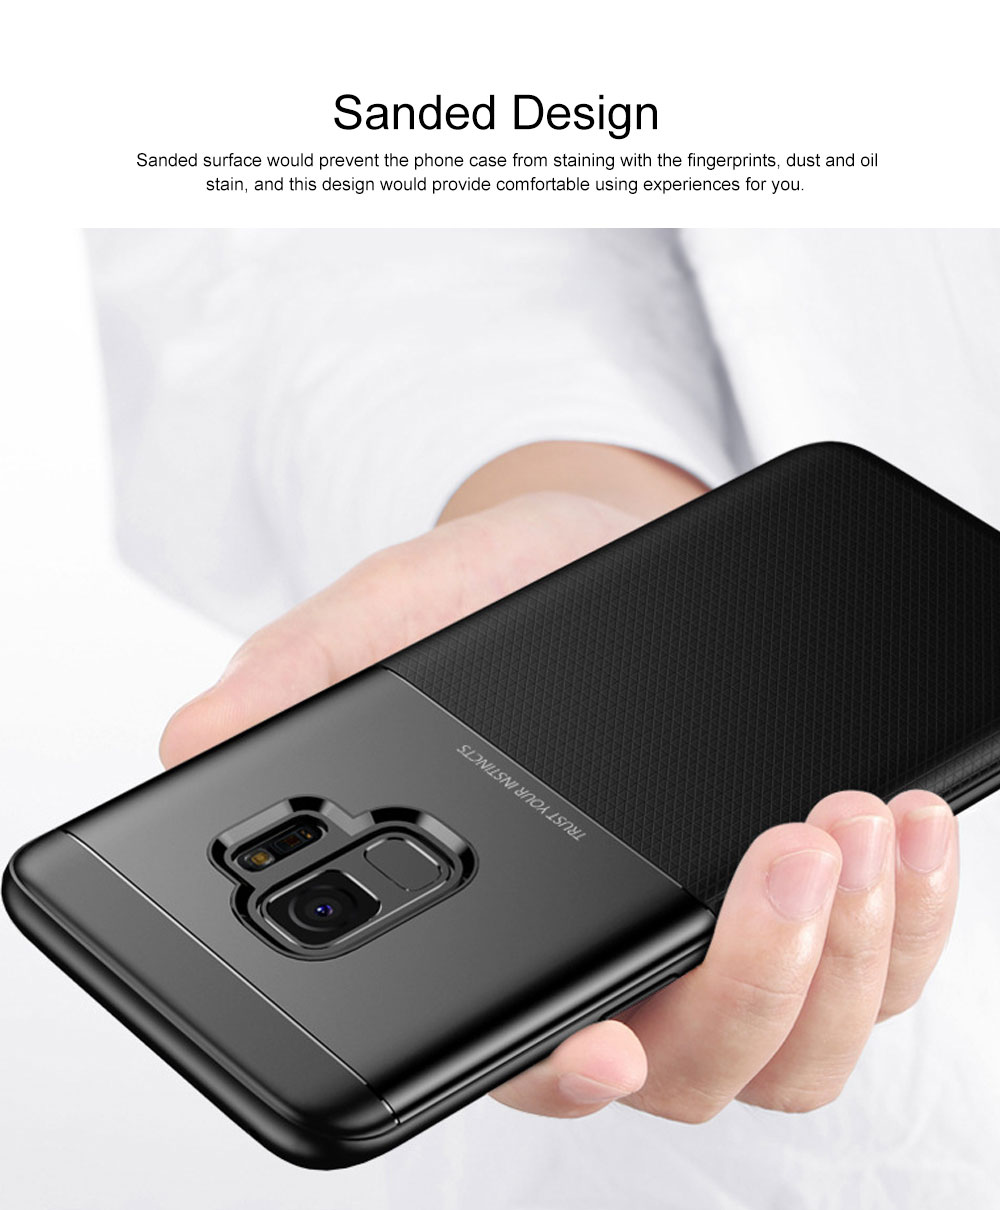 Quality TPU PC Carbon Fiber Sanded Phone Case for Samsung Galaxy S9 plus, Tough Skin-friendly Samsung S9 Mobile Phone Protective Back Cover 4